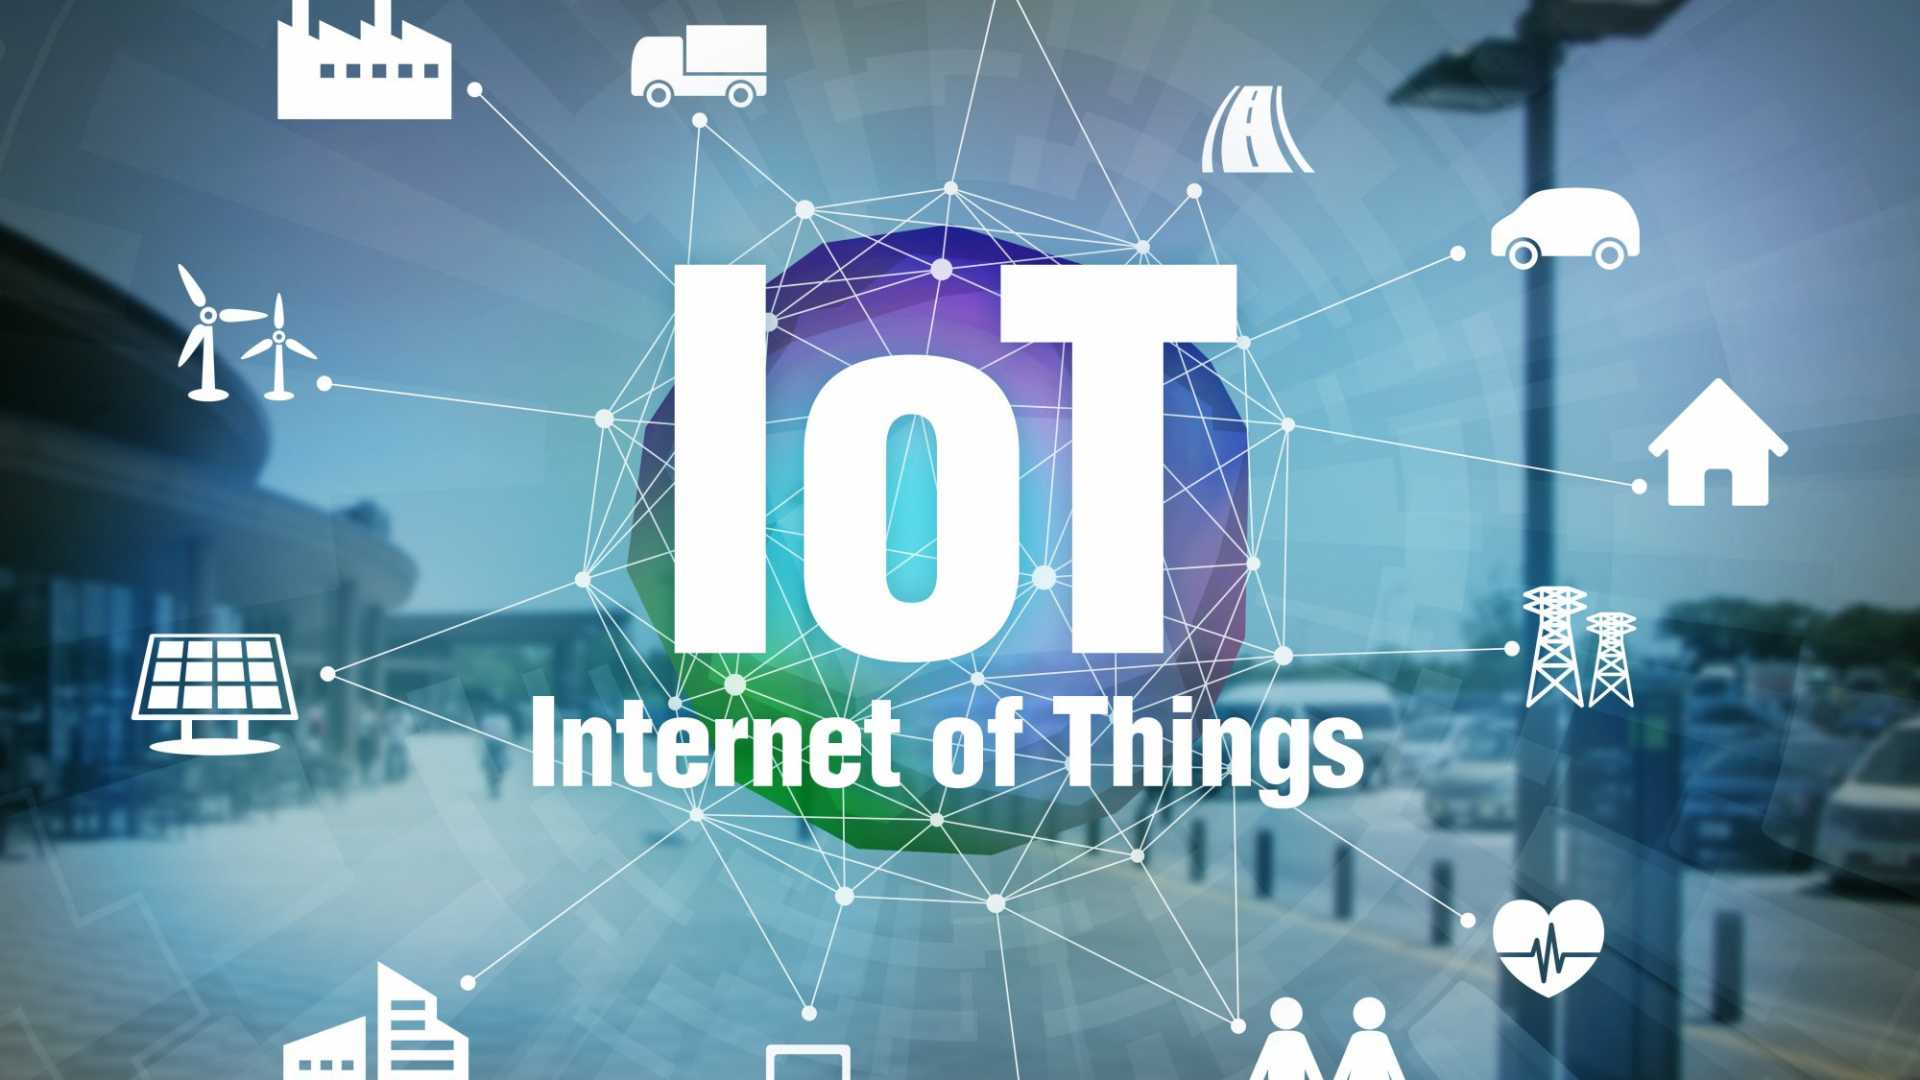 3 Internet of Things Trends to Watch in 2018